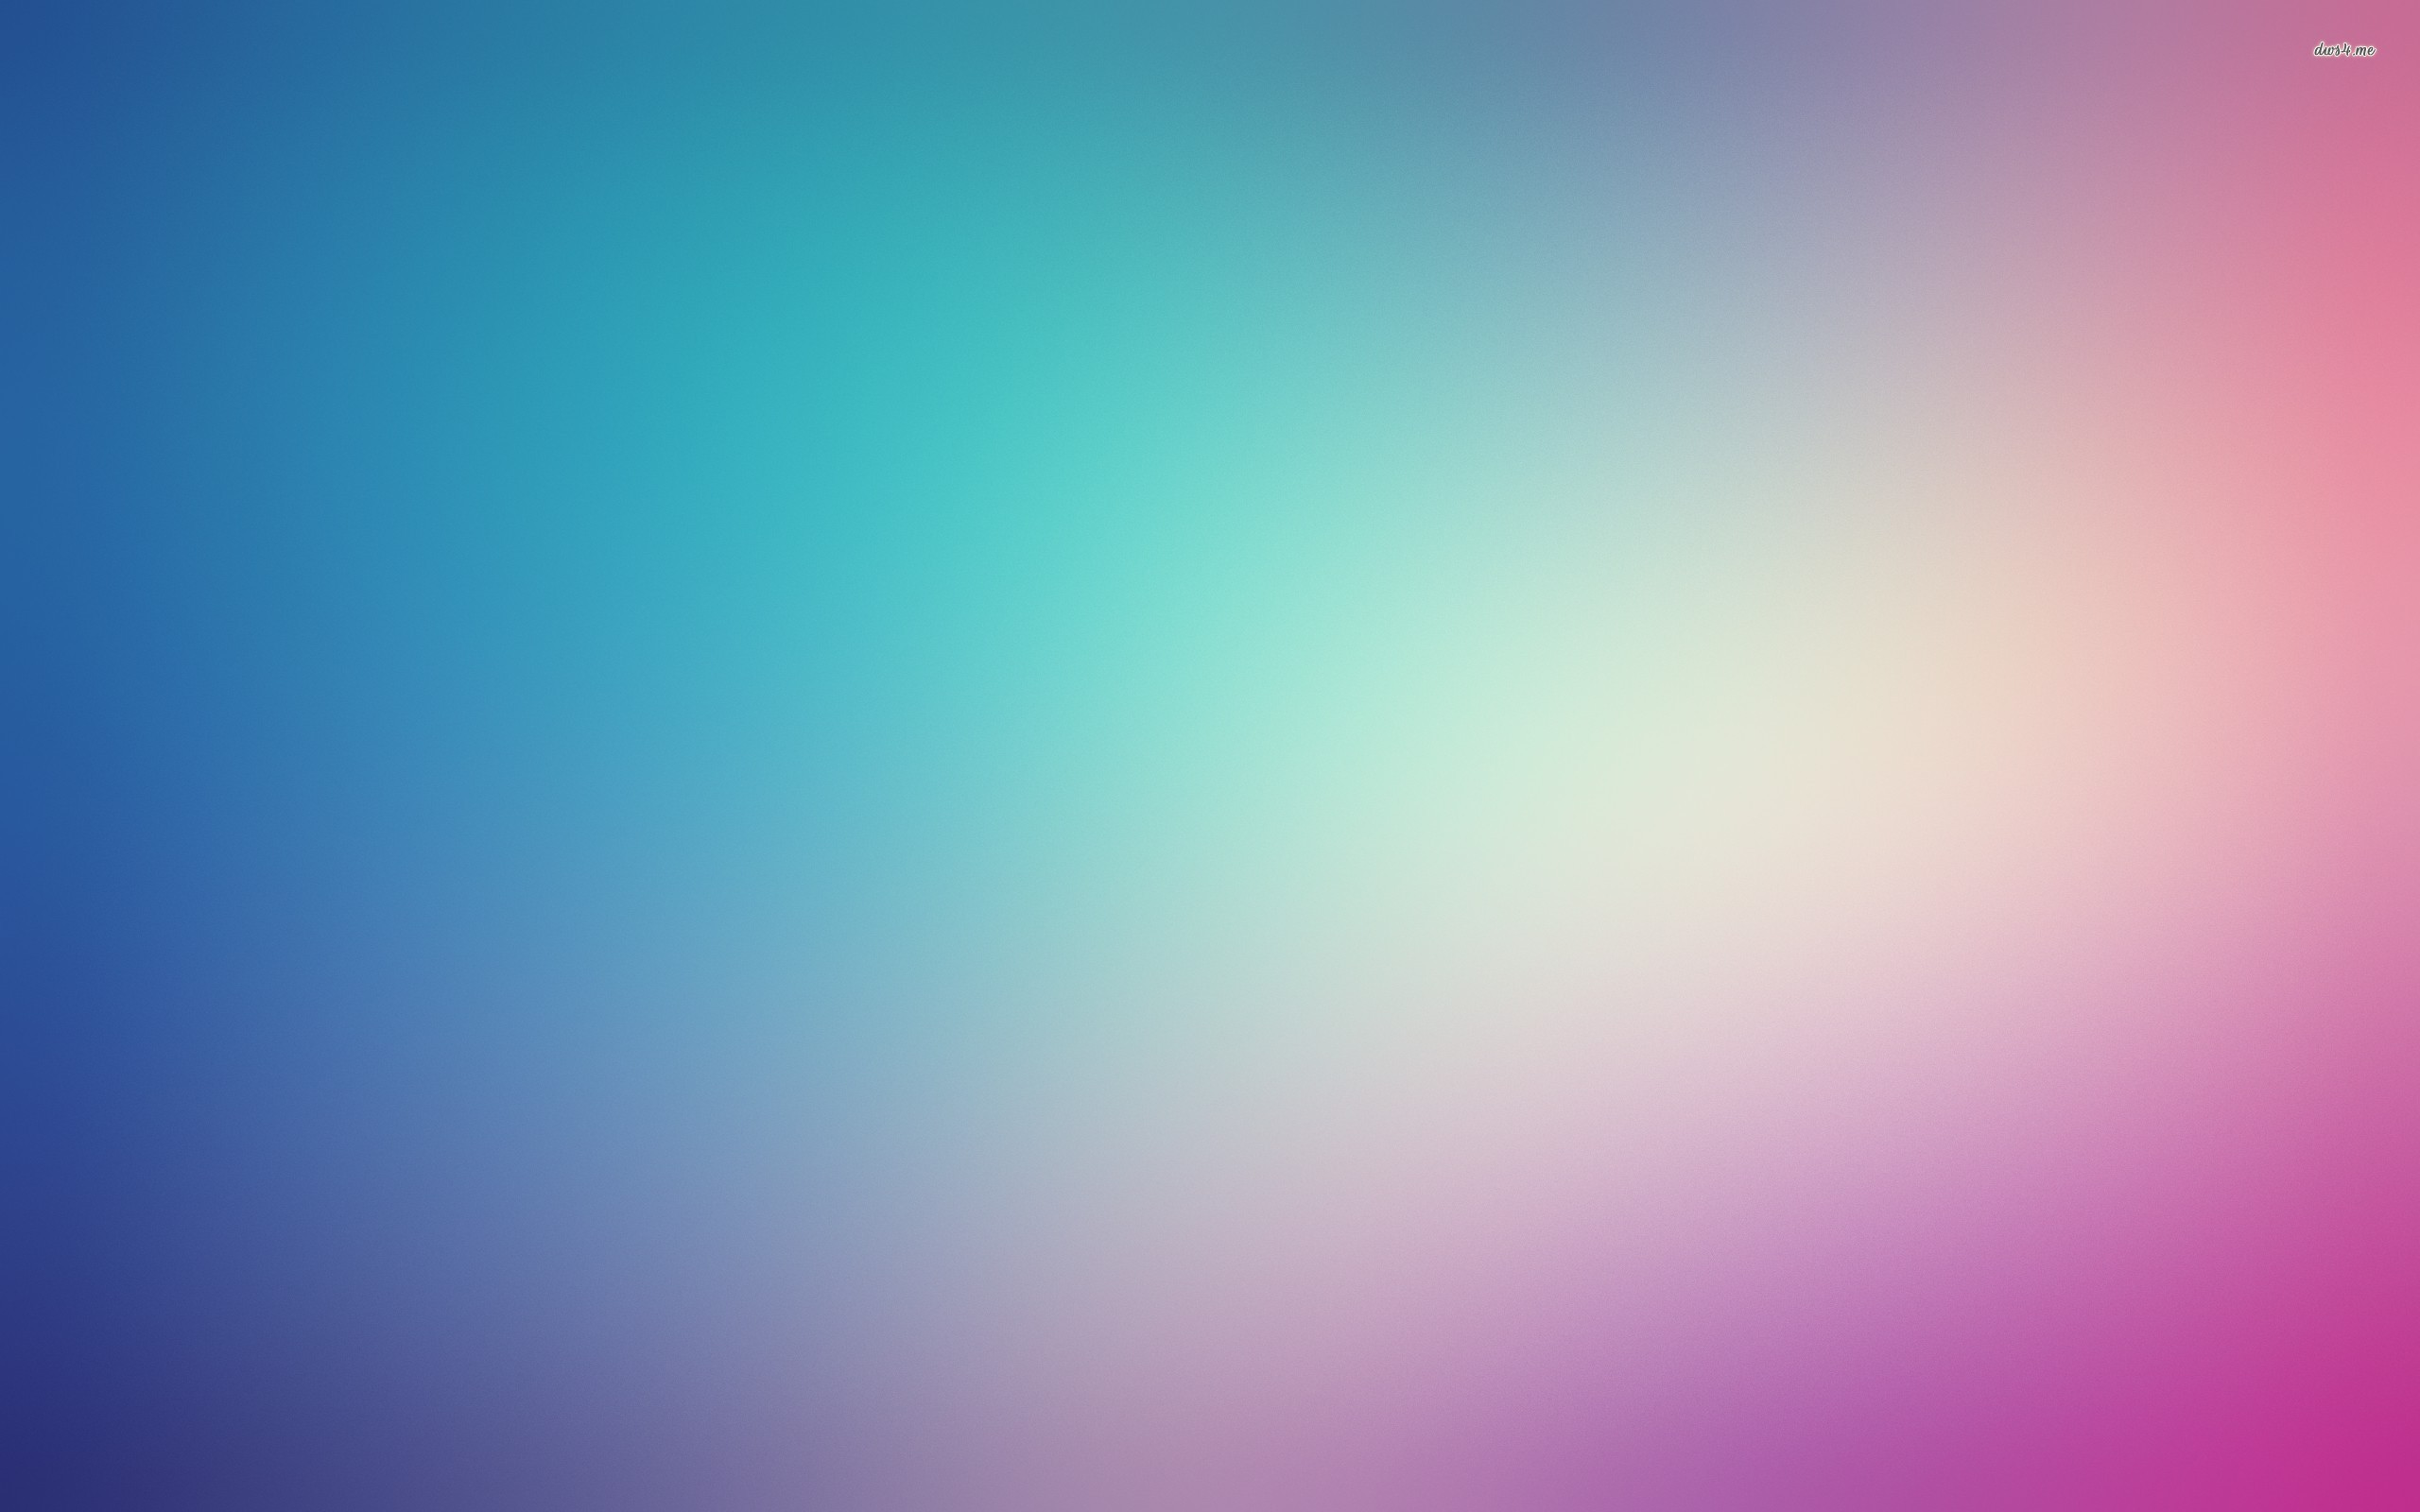 Turquoise Blur Wallpapers 7 - 2560 X 1600 | stmed.net